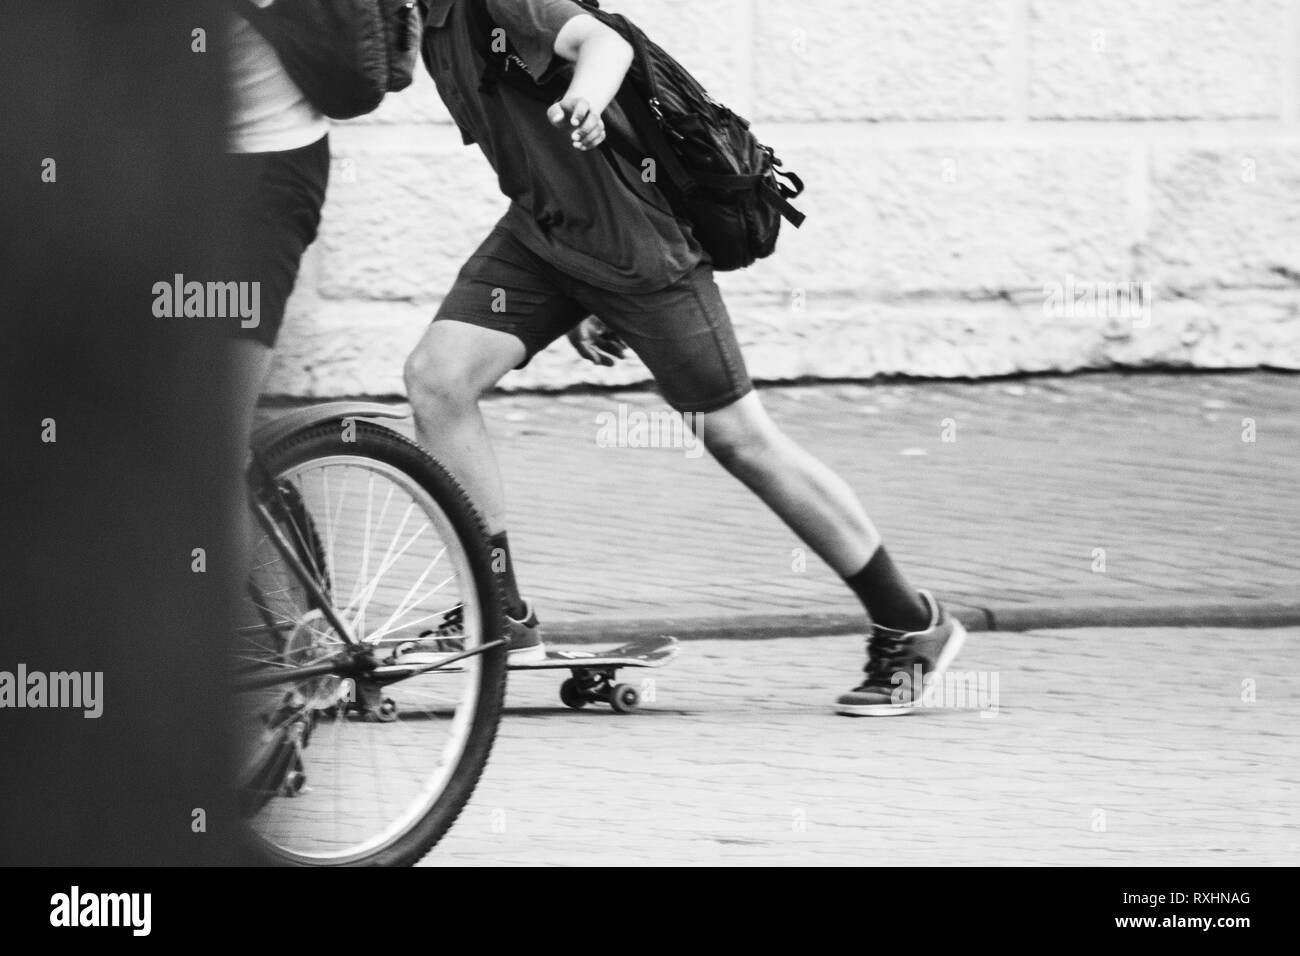 Skateboarding. Teen in shorts rides a skateboard. Black and white photography - Stock Image